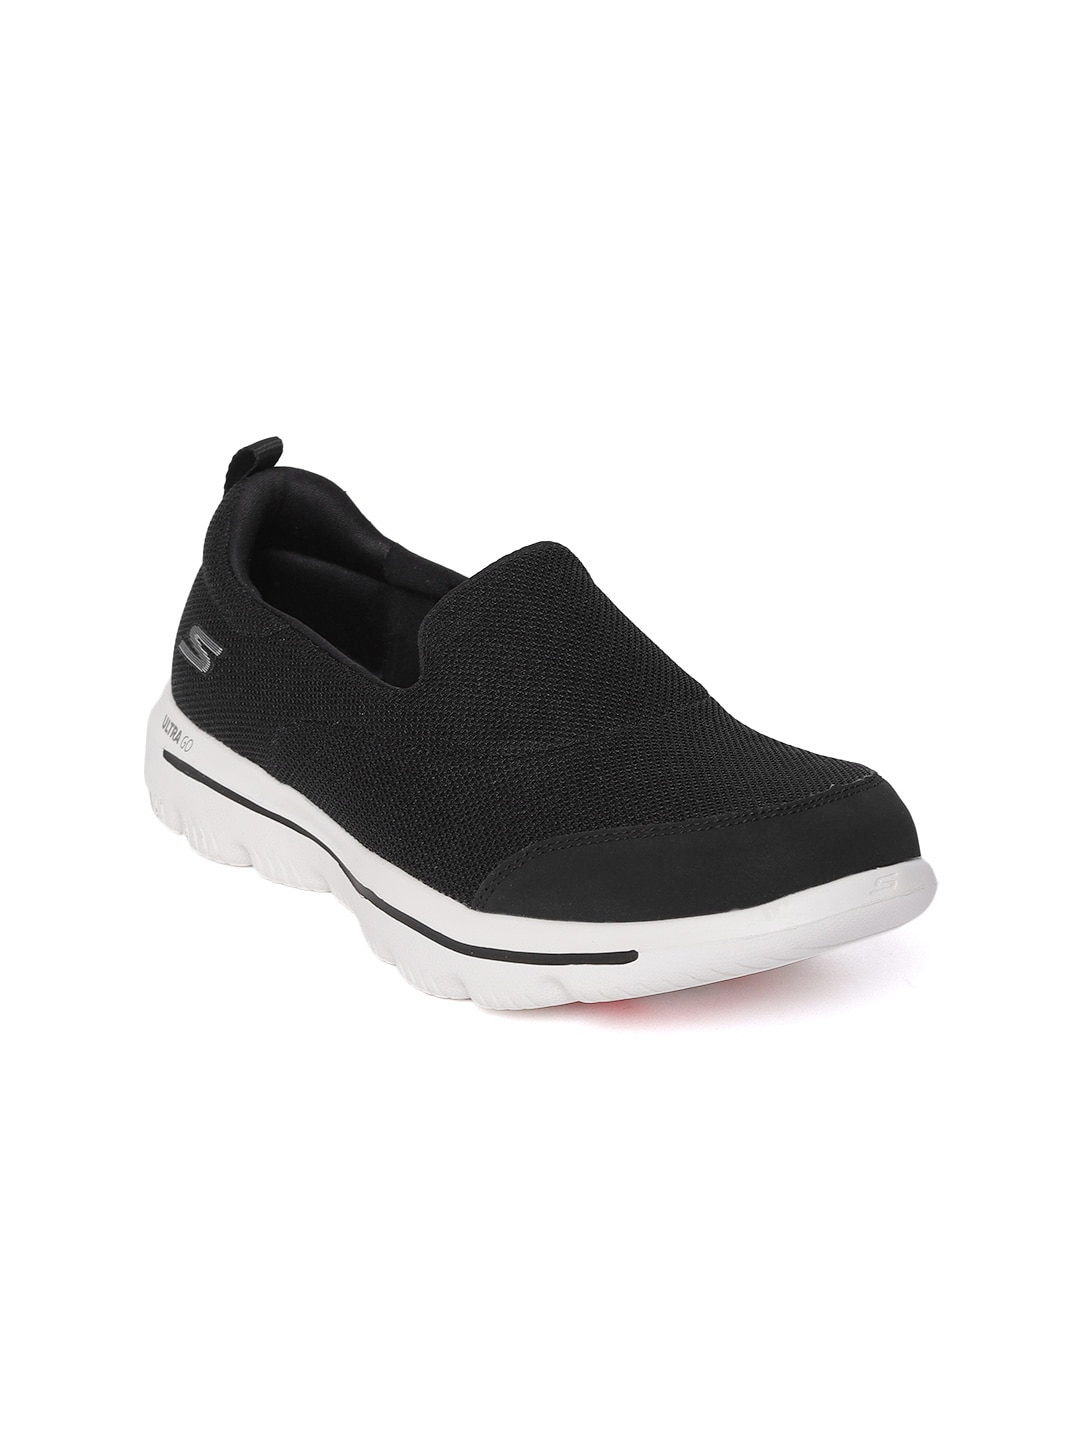 98e2821e13b8 Women Walking Shoe - Buy Women Walking Shoe online in India